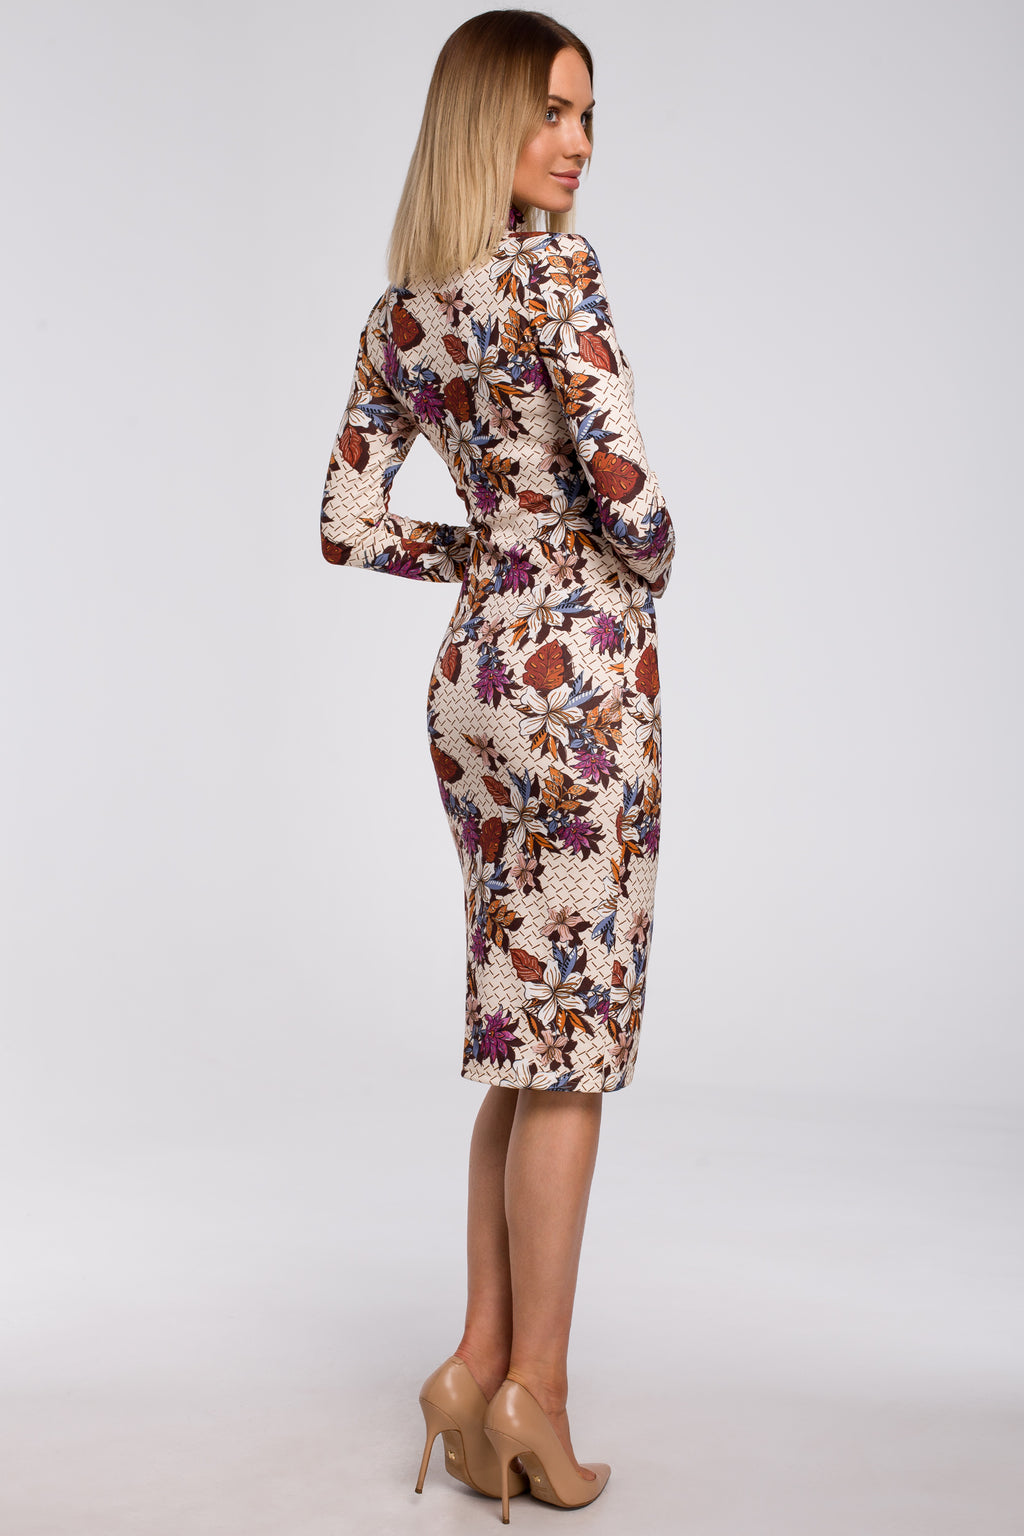 Midi Beige Floral Print Dress With A Turtleneck - So Chic Boutique